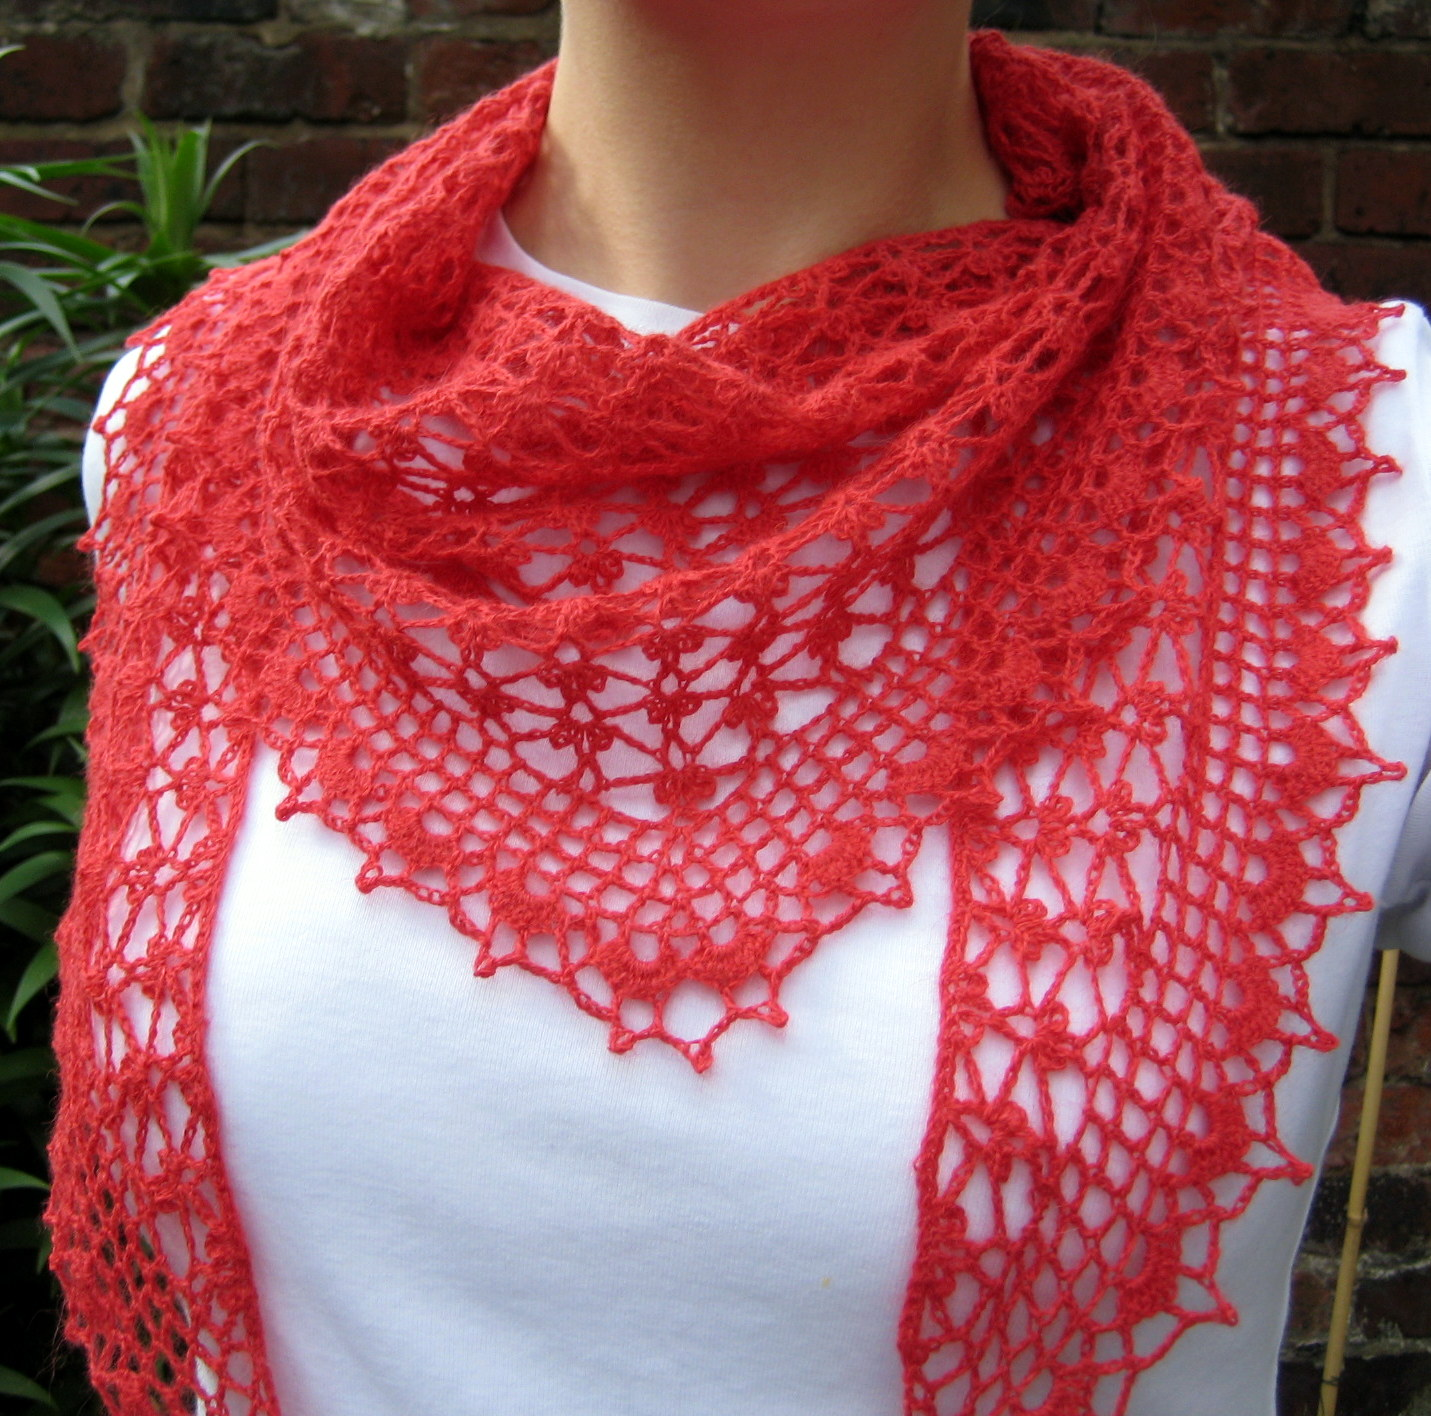 Crochet Lace Weight Shawl Pattern : Summer Sprigs Lace Scarf Make My Day Creative